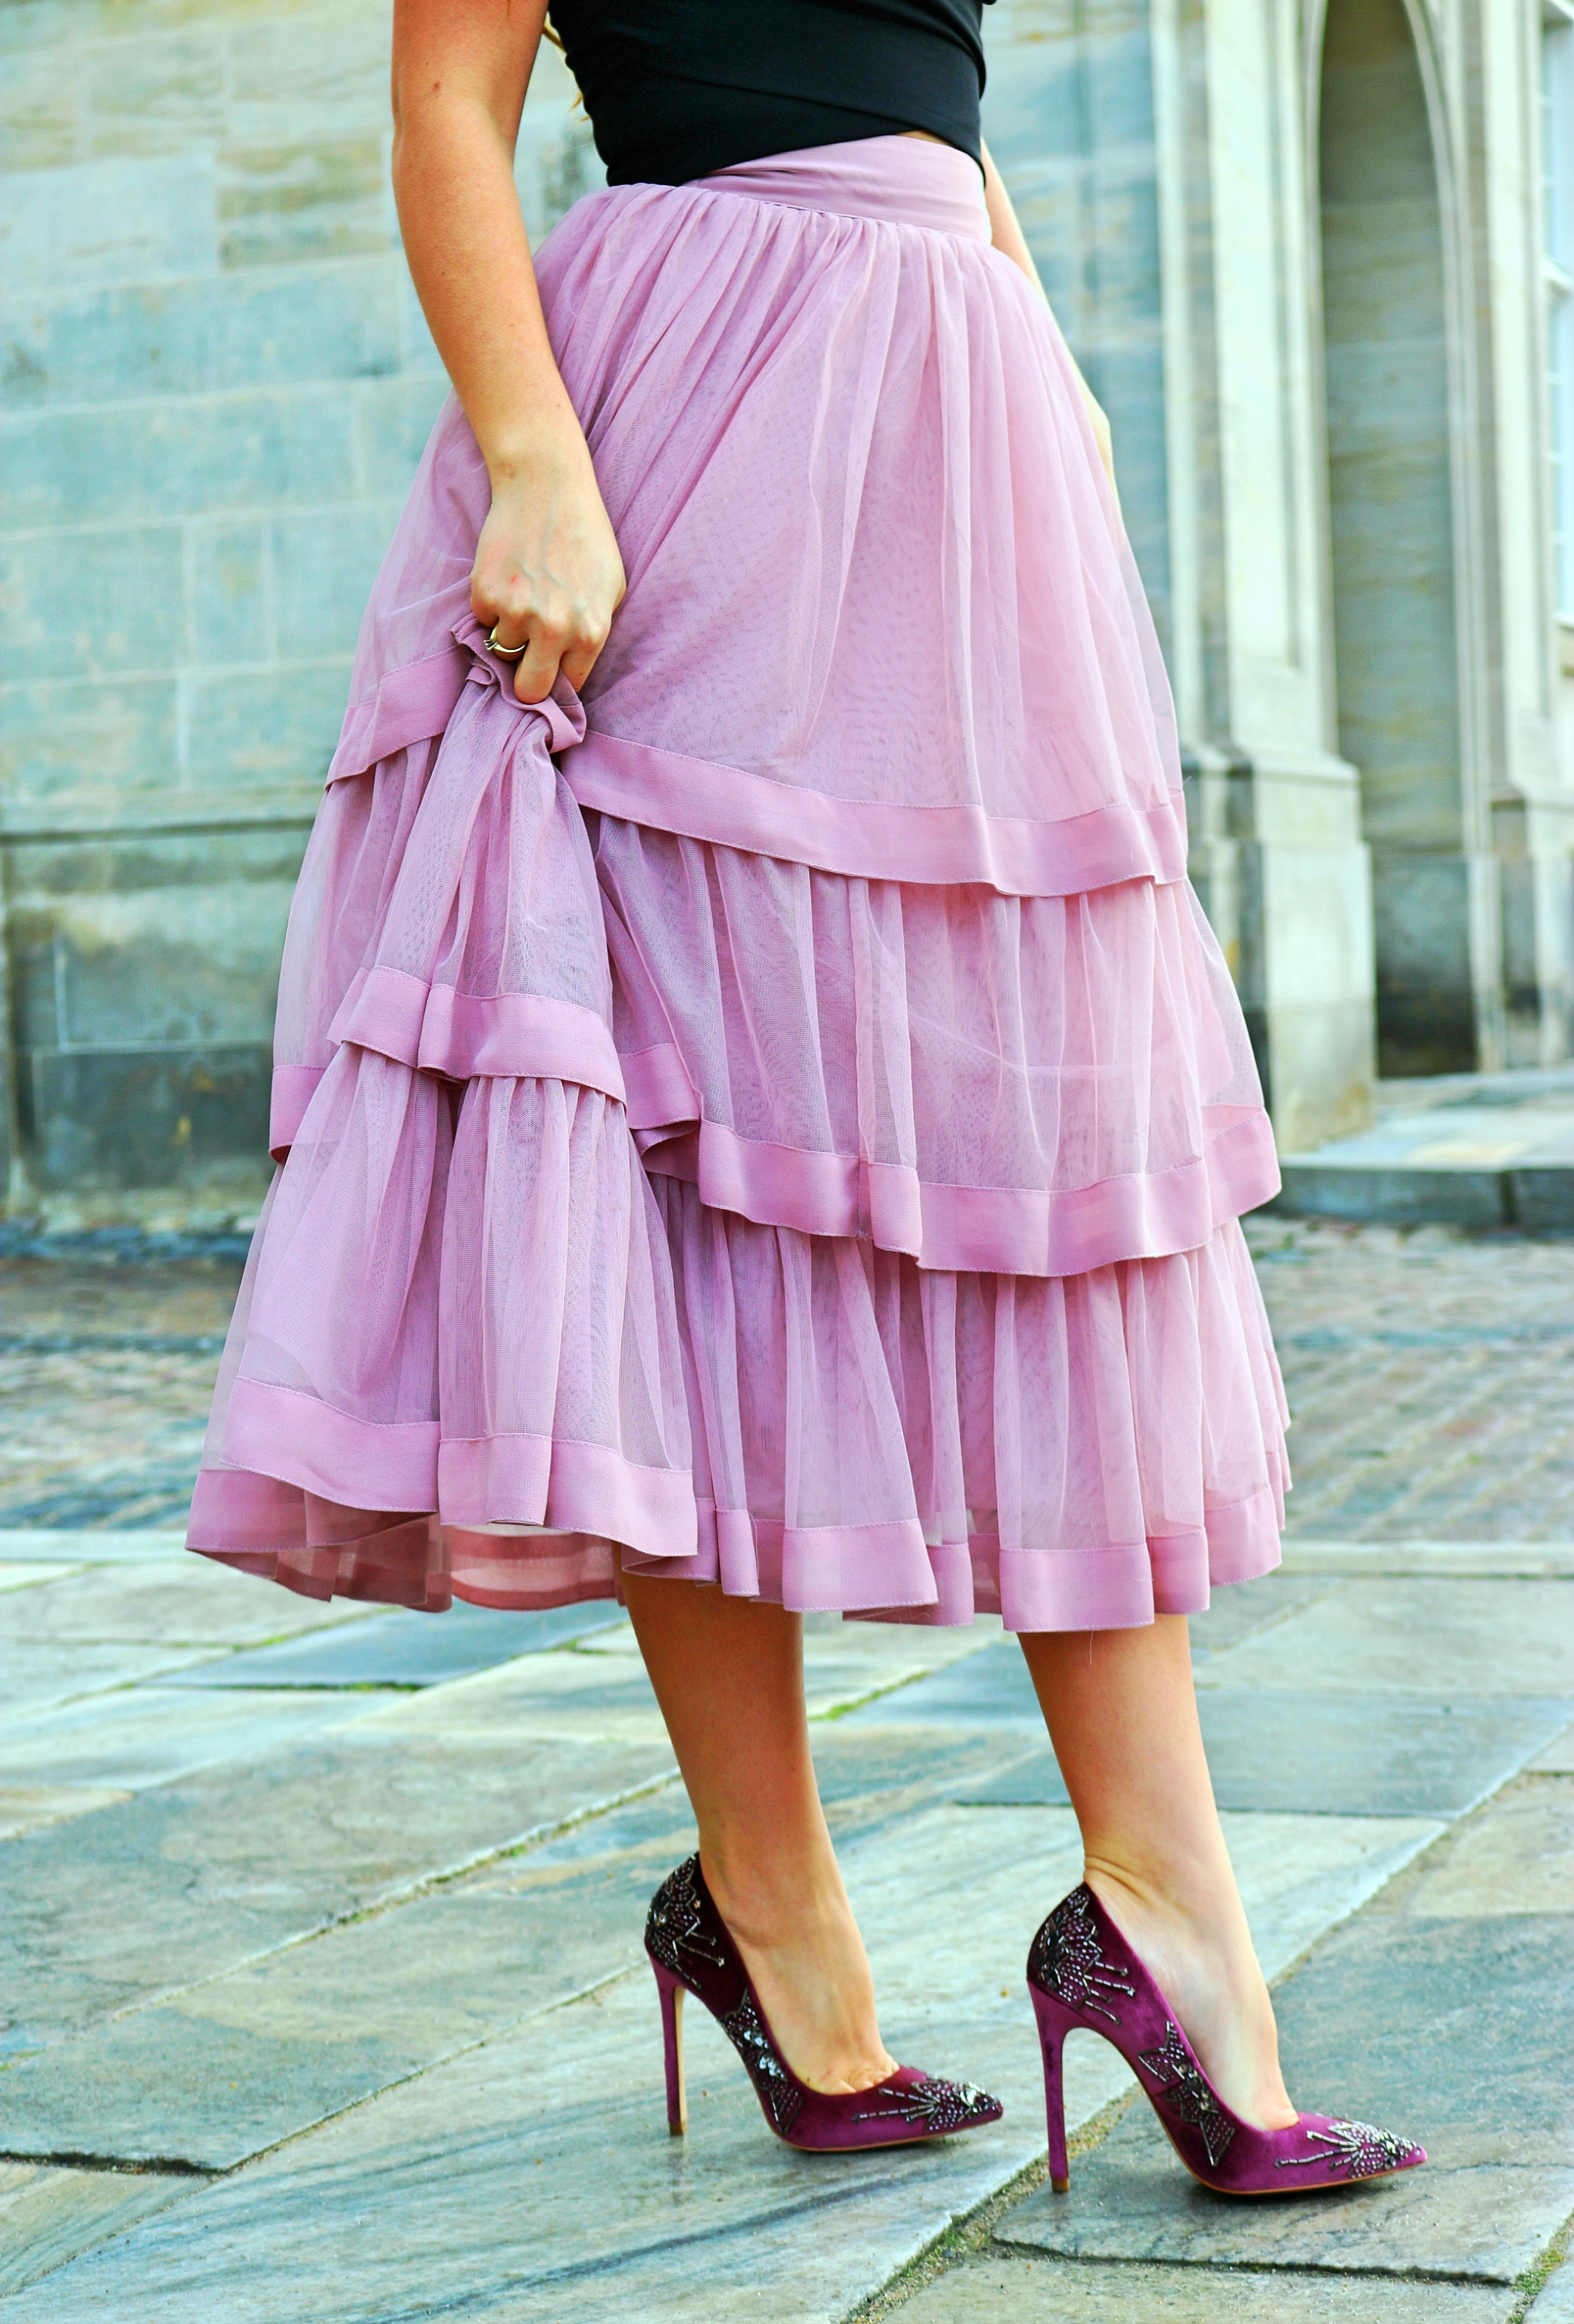 carrie bradshaw skirt